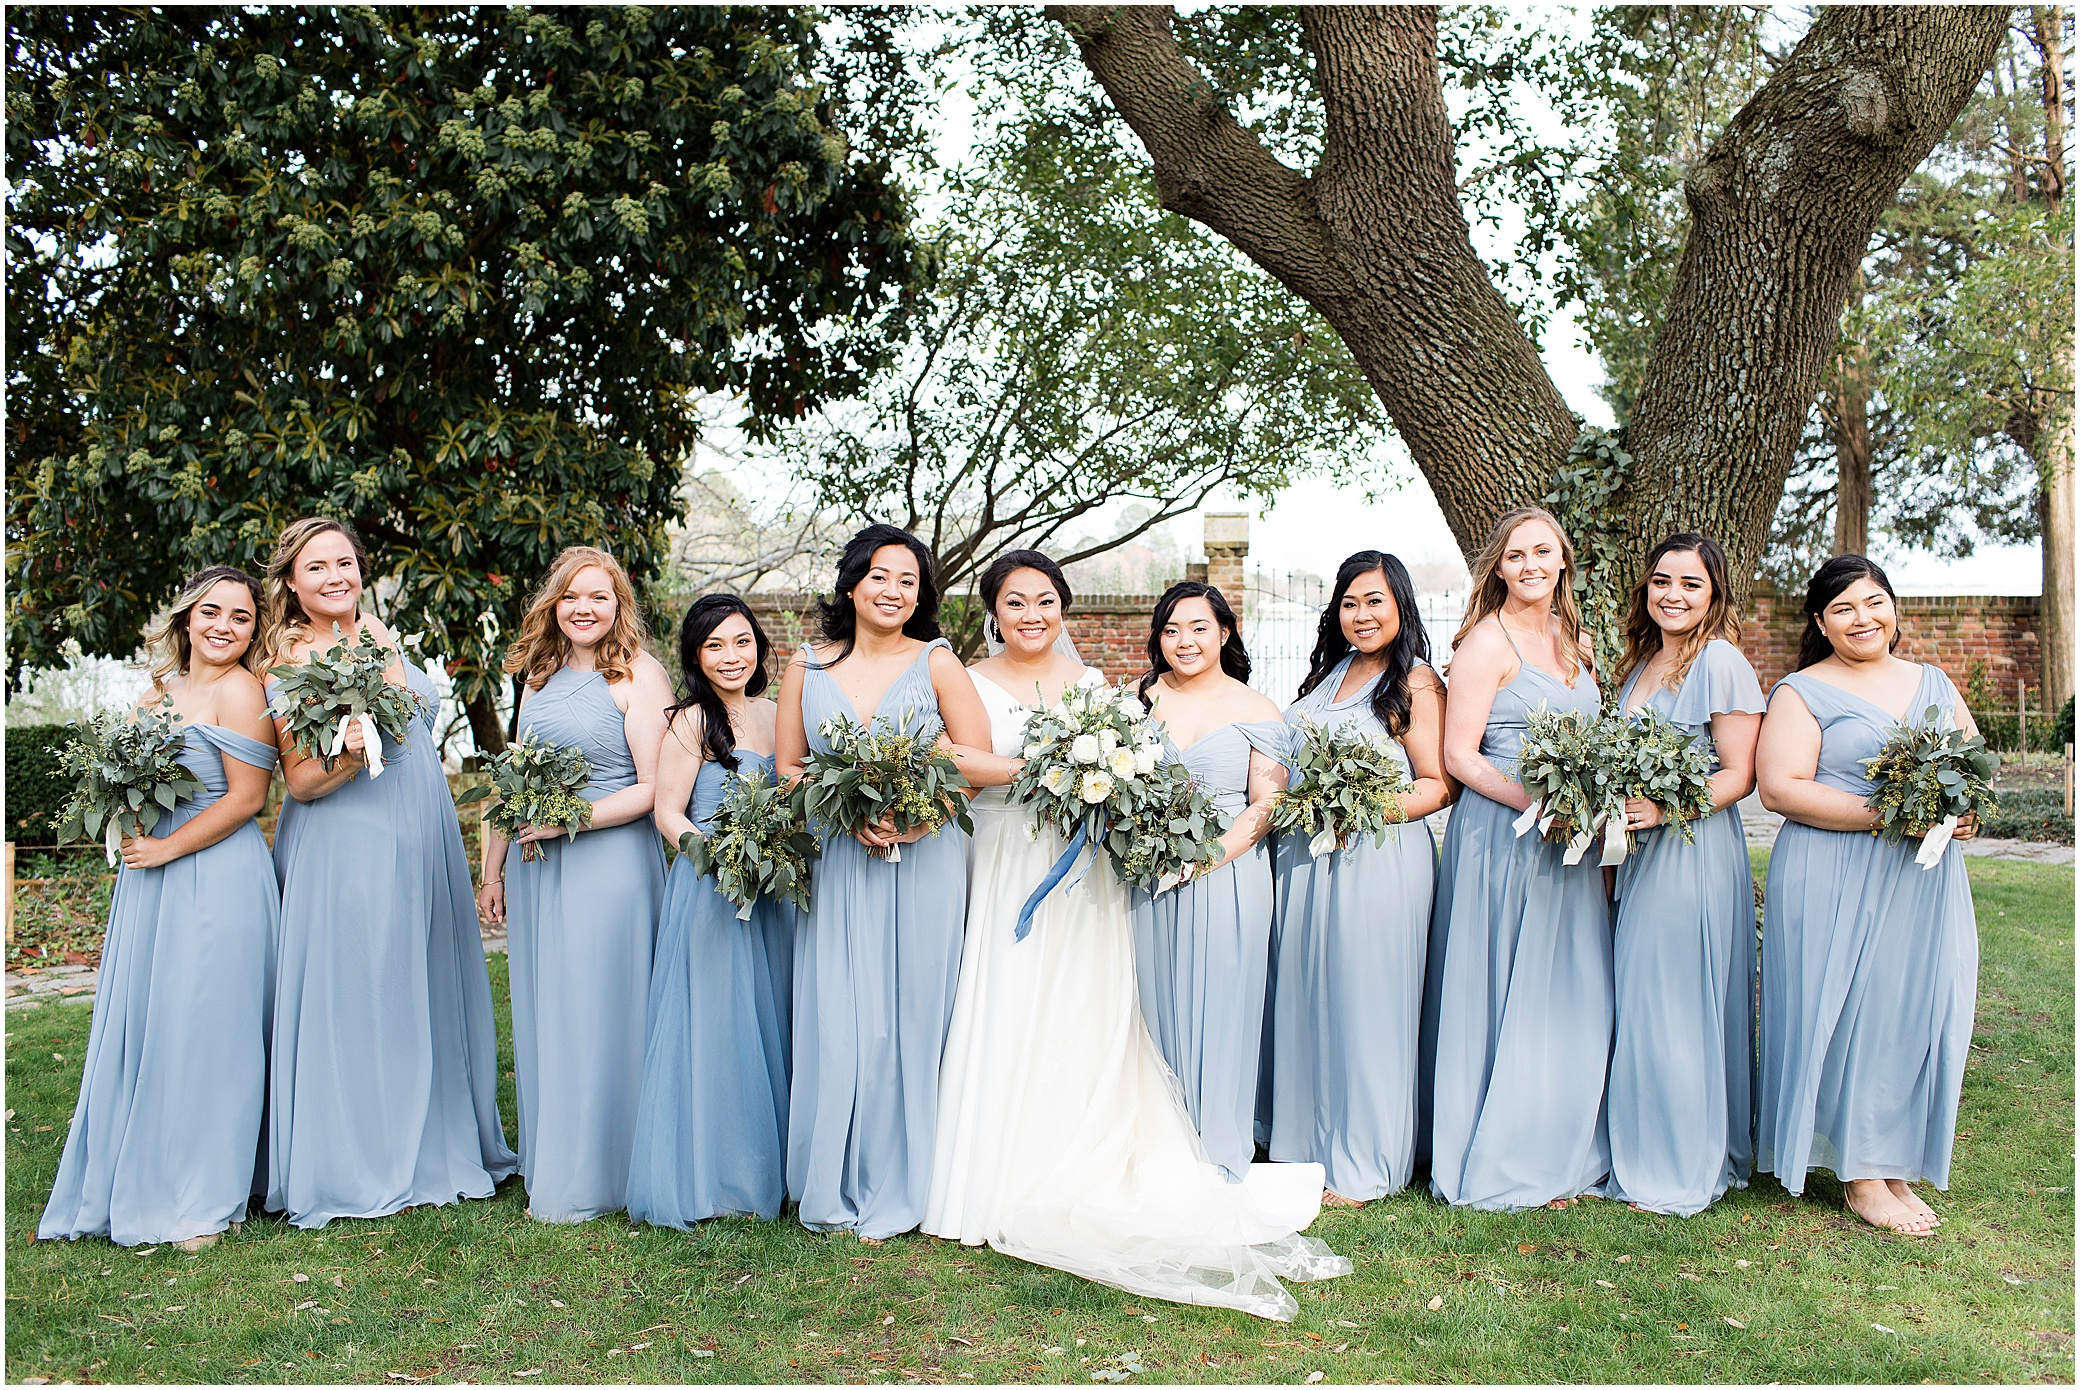 bridal party, spring wedding at the hermitage museum and gardens, Jessica Ryan photography, distinctive event rentals, crafted stems wedding florist, sunkissed events